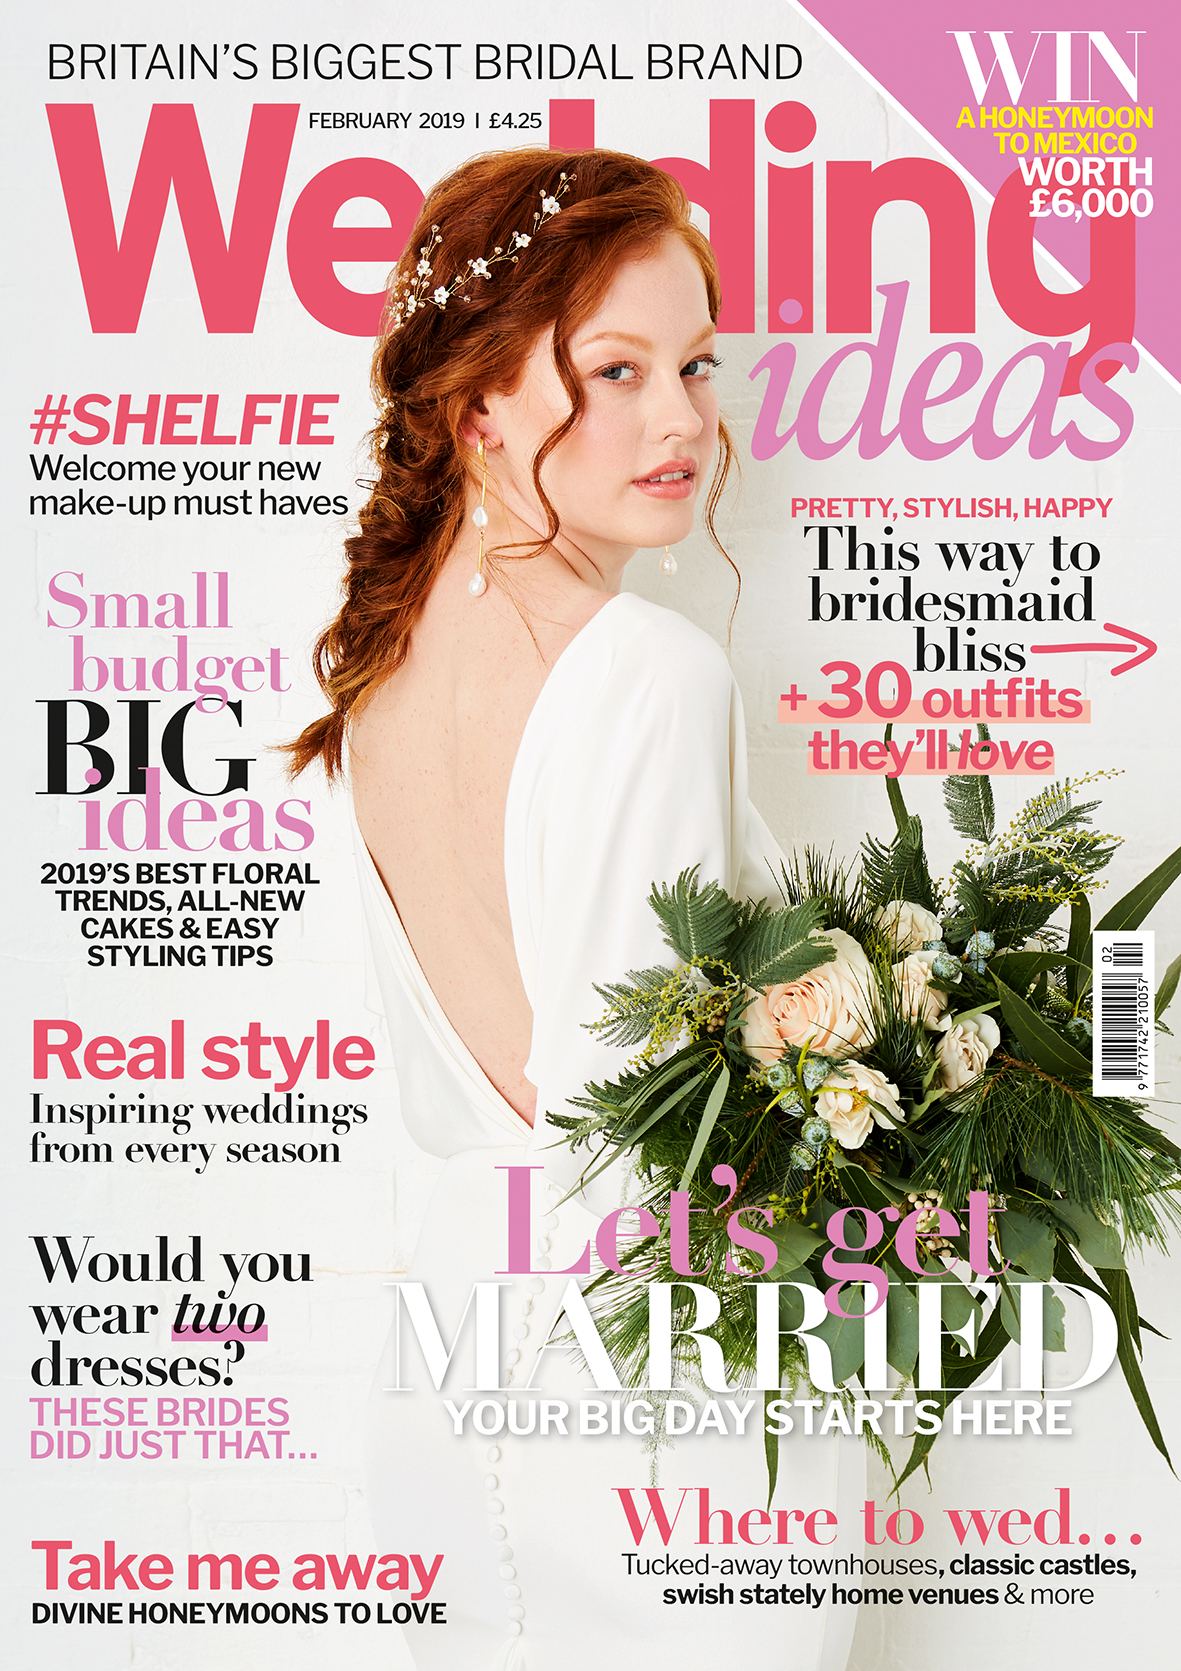 Cover_WI_February19 v11.indd